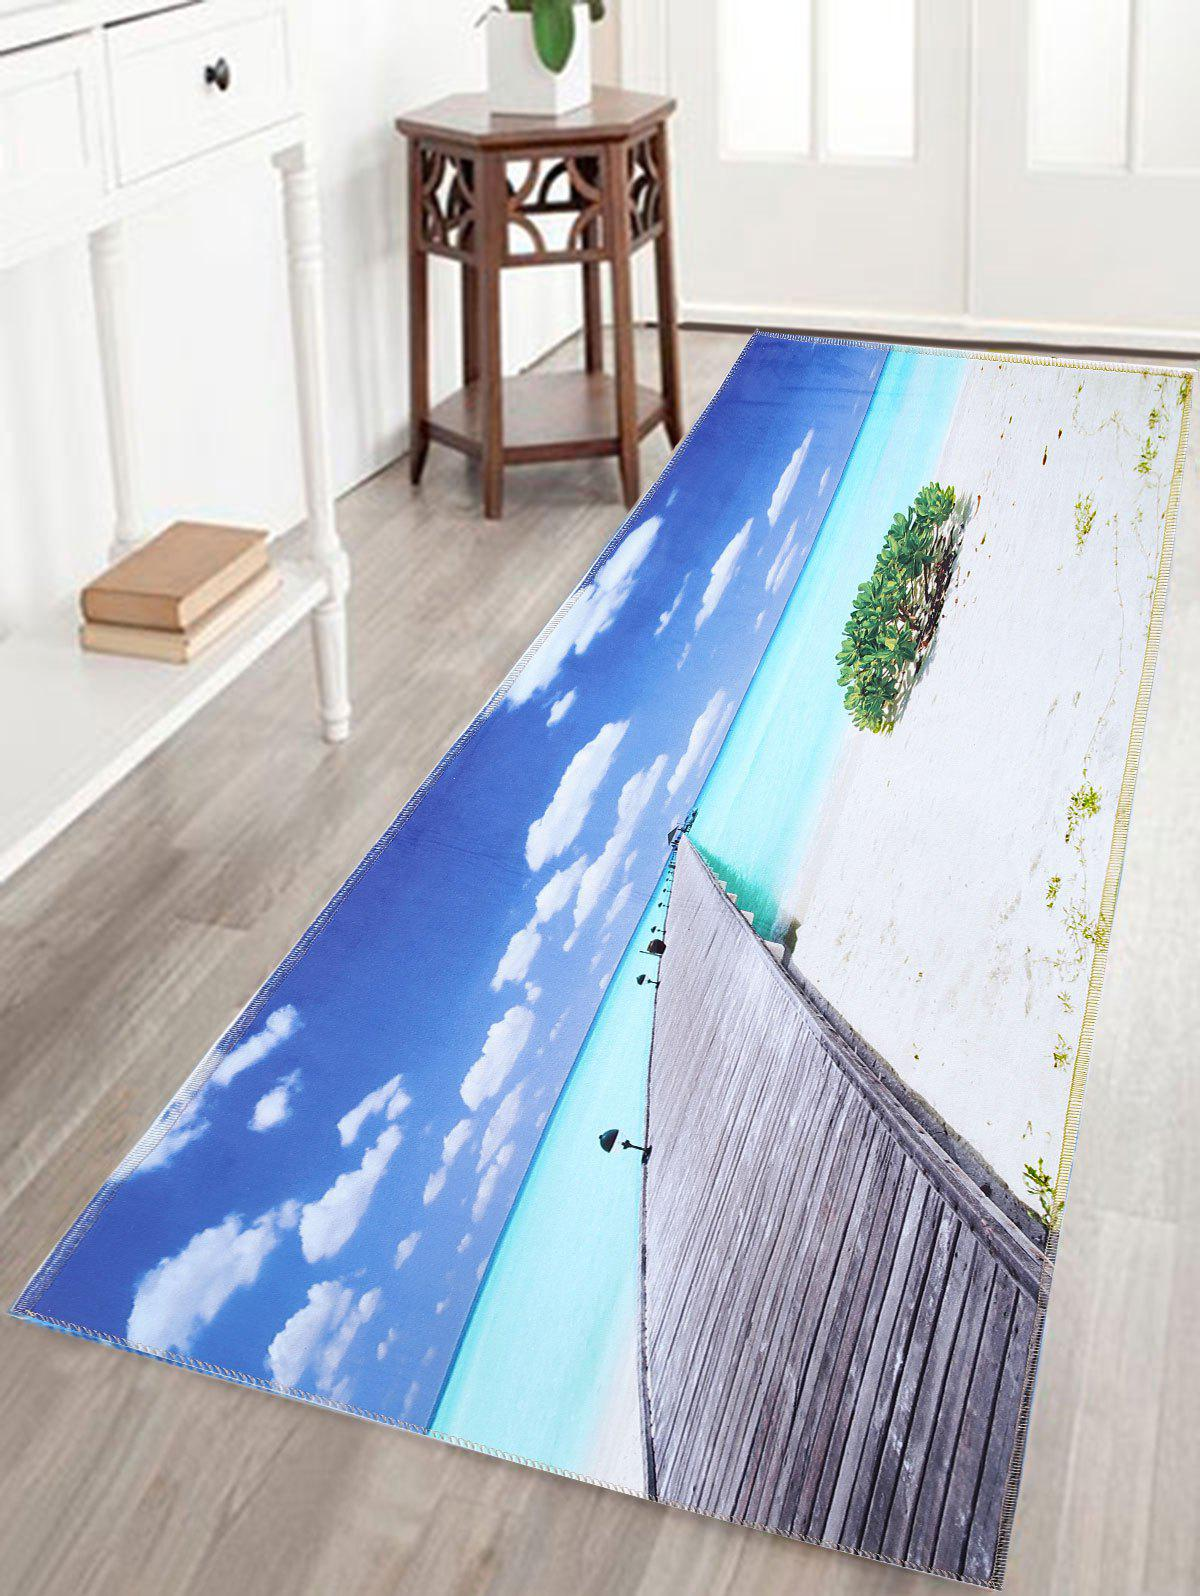 Skidproof Water Absorption Bathroom Rug with Sea Bridge Print skidproof water absorption bathroom rug with wood grain print